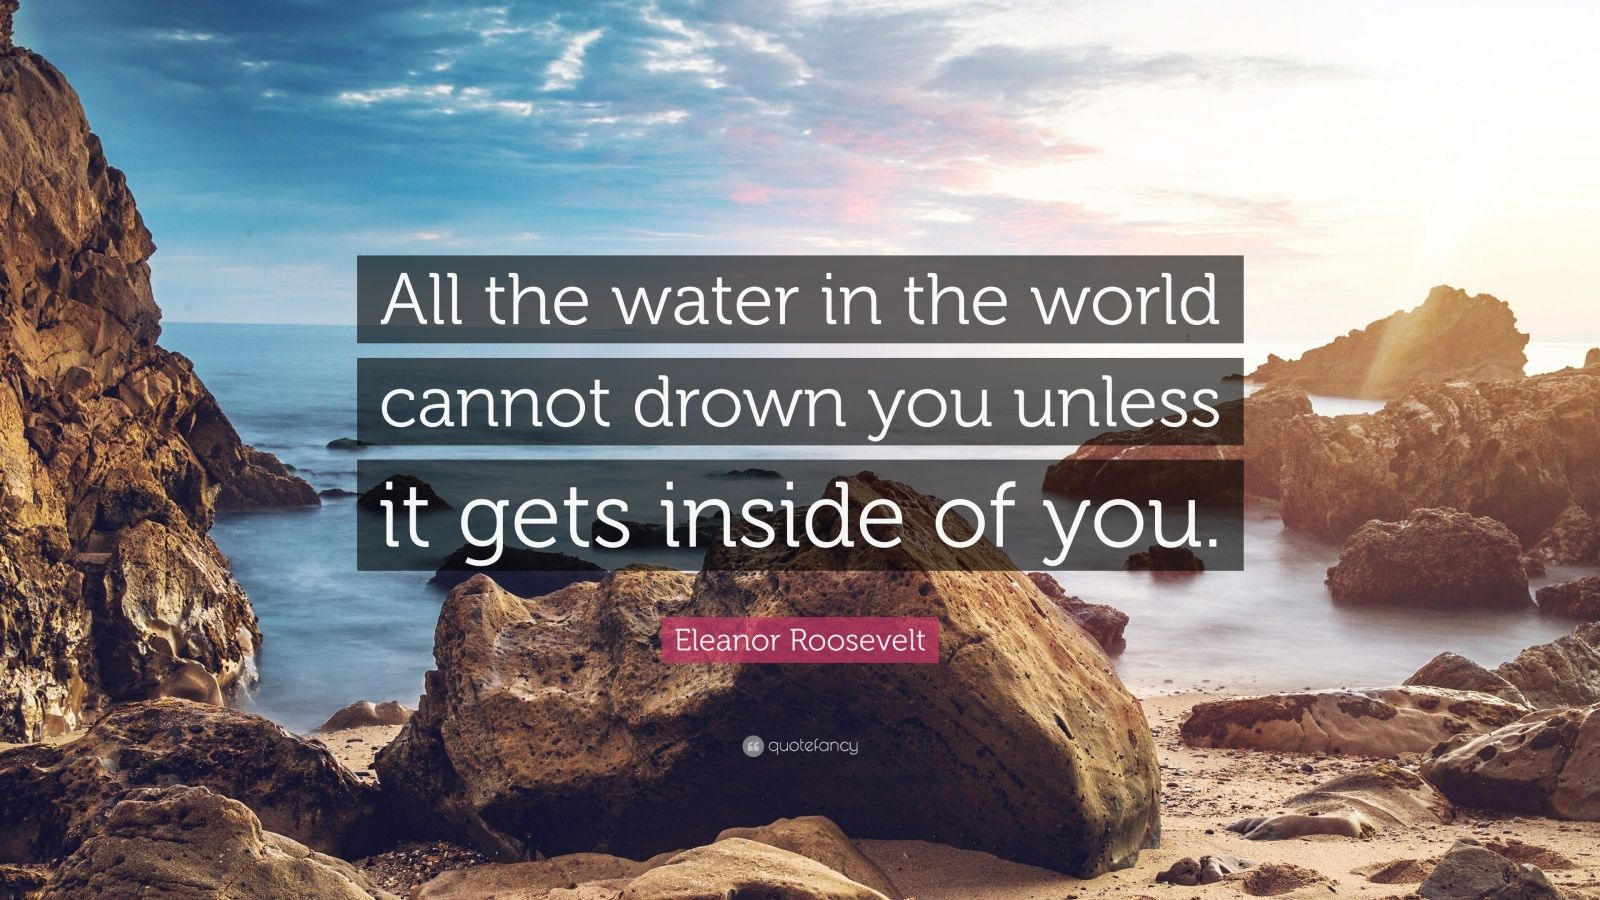 """Eleanor Roosevelt Quote: """"All the water in the world cannot drown you unless it gets inside of you."""""""